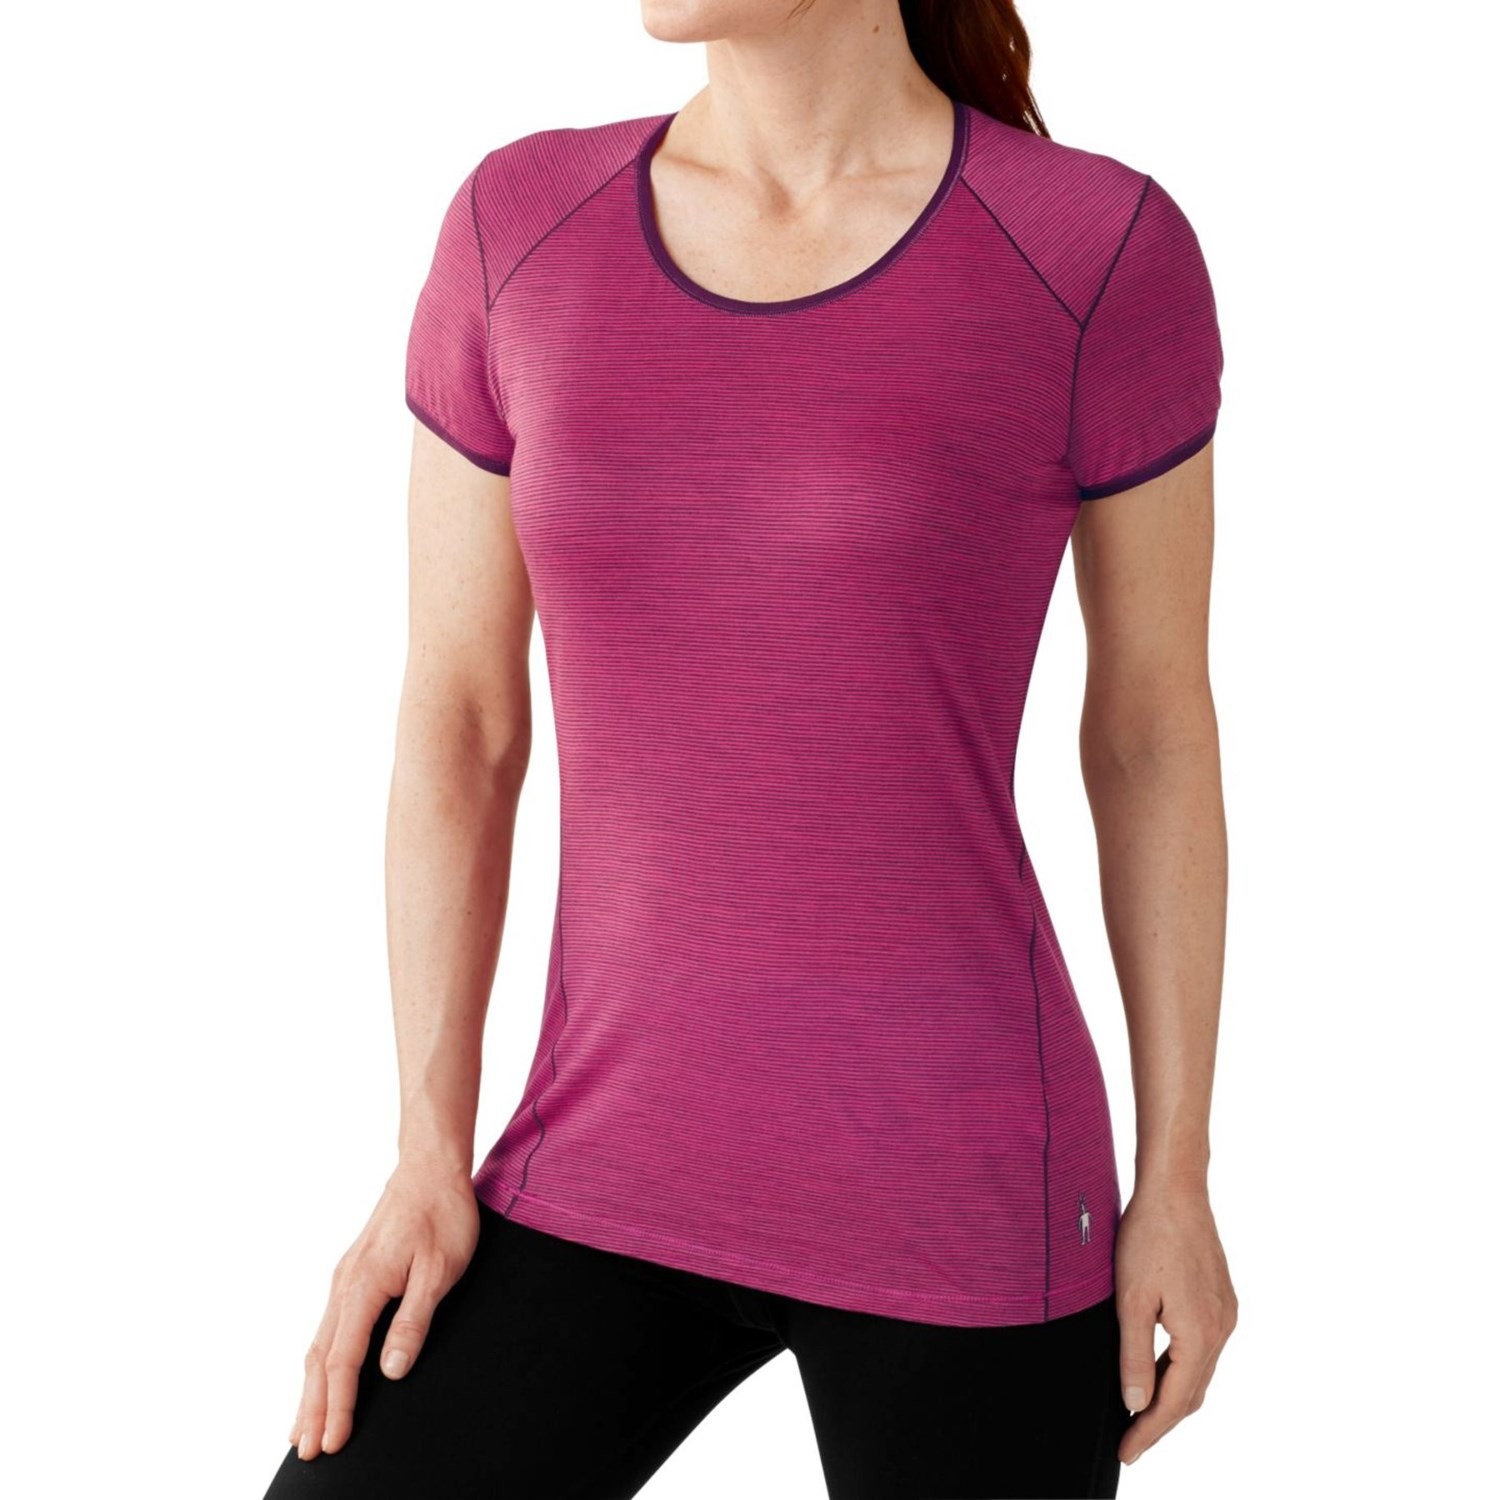 Smartwool nts 150 micro base layer top for women for Womens base layer shirt